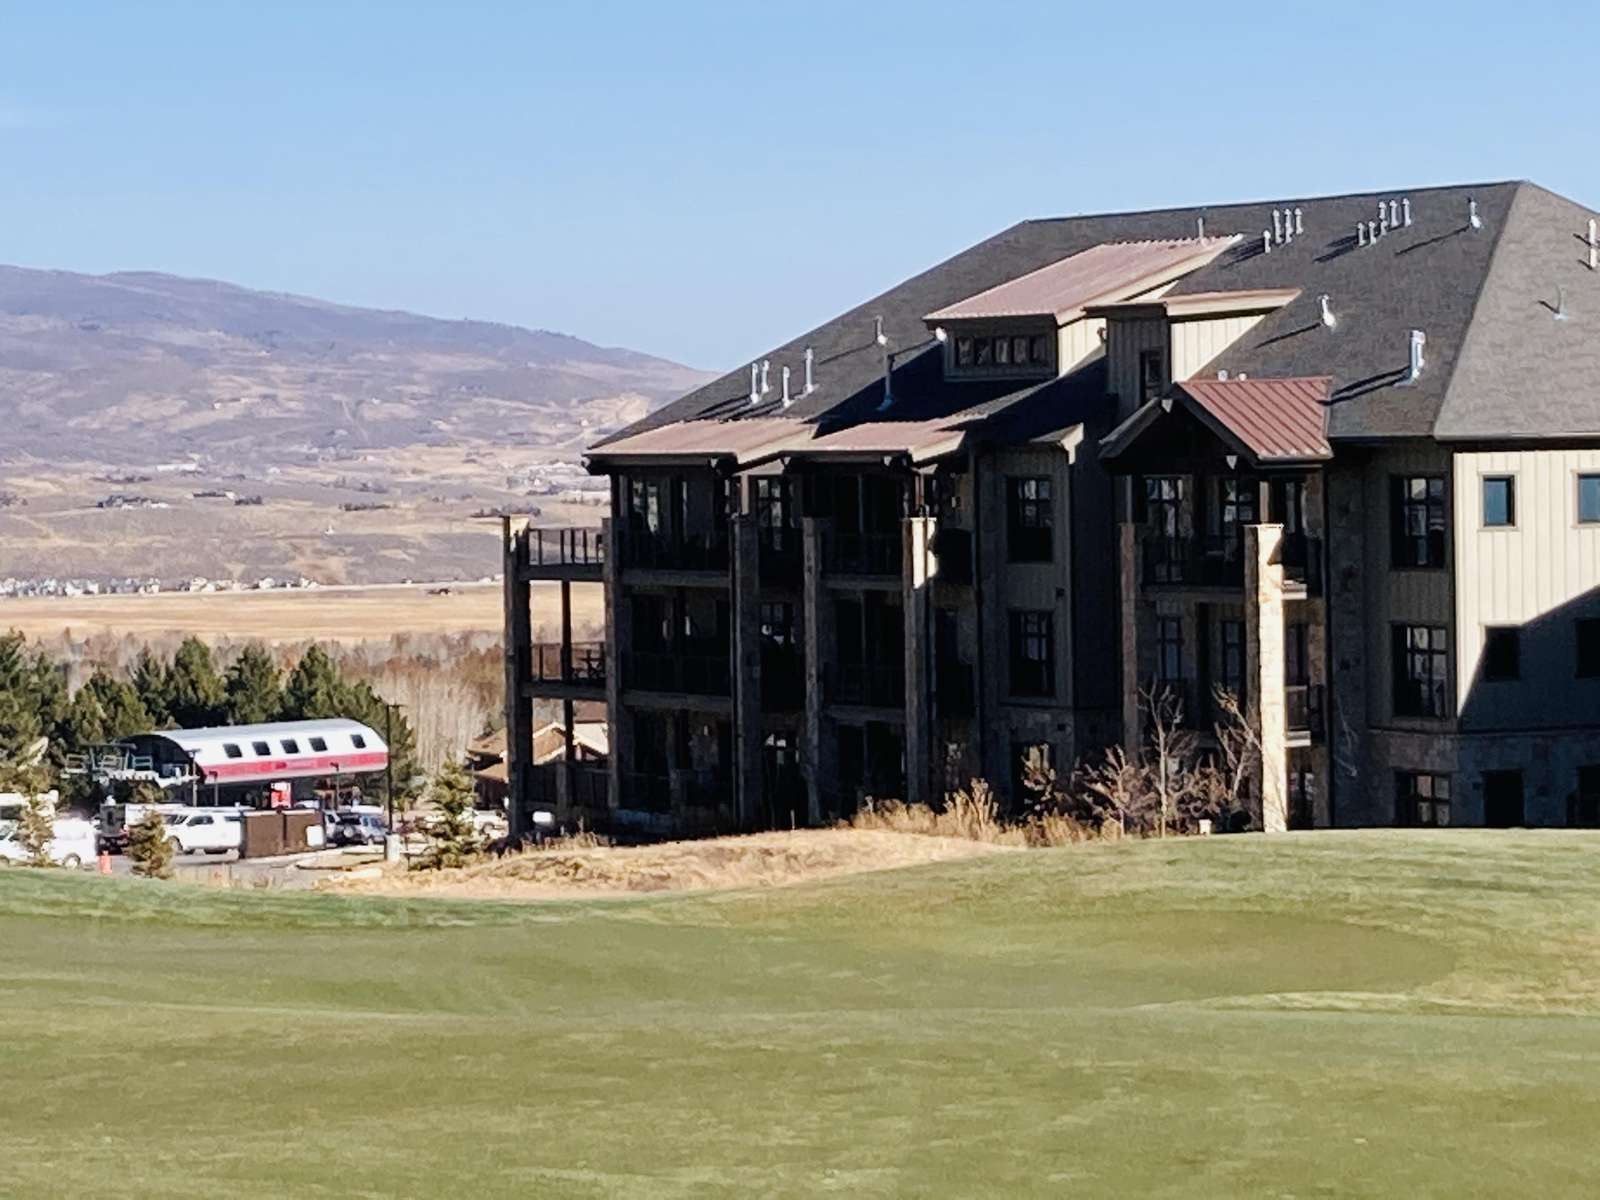 The Cabriolet Gondola is across the street from the condo buildings